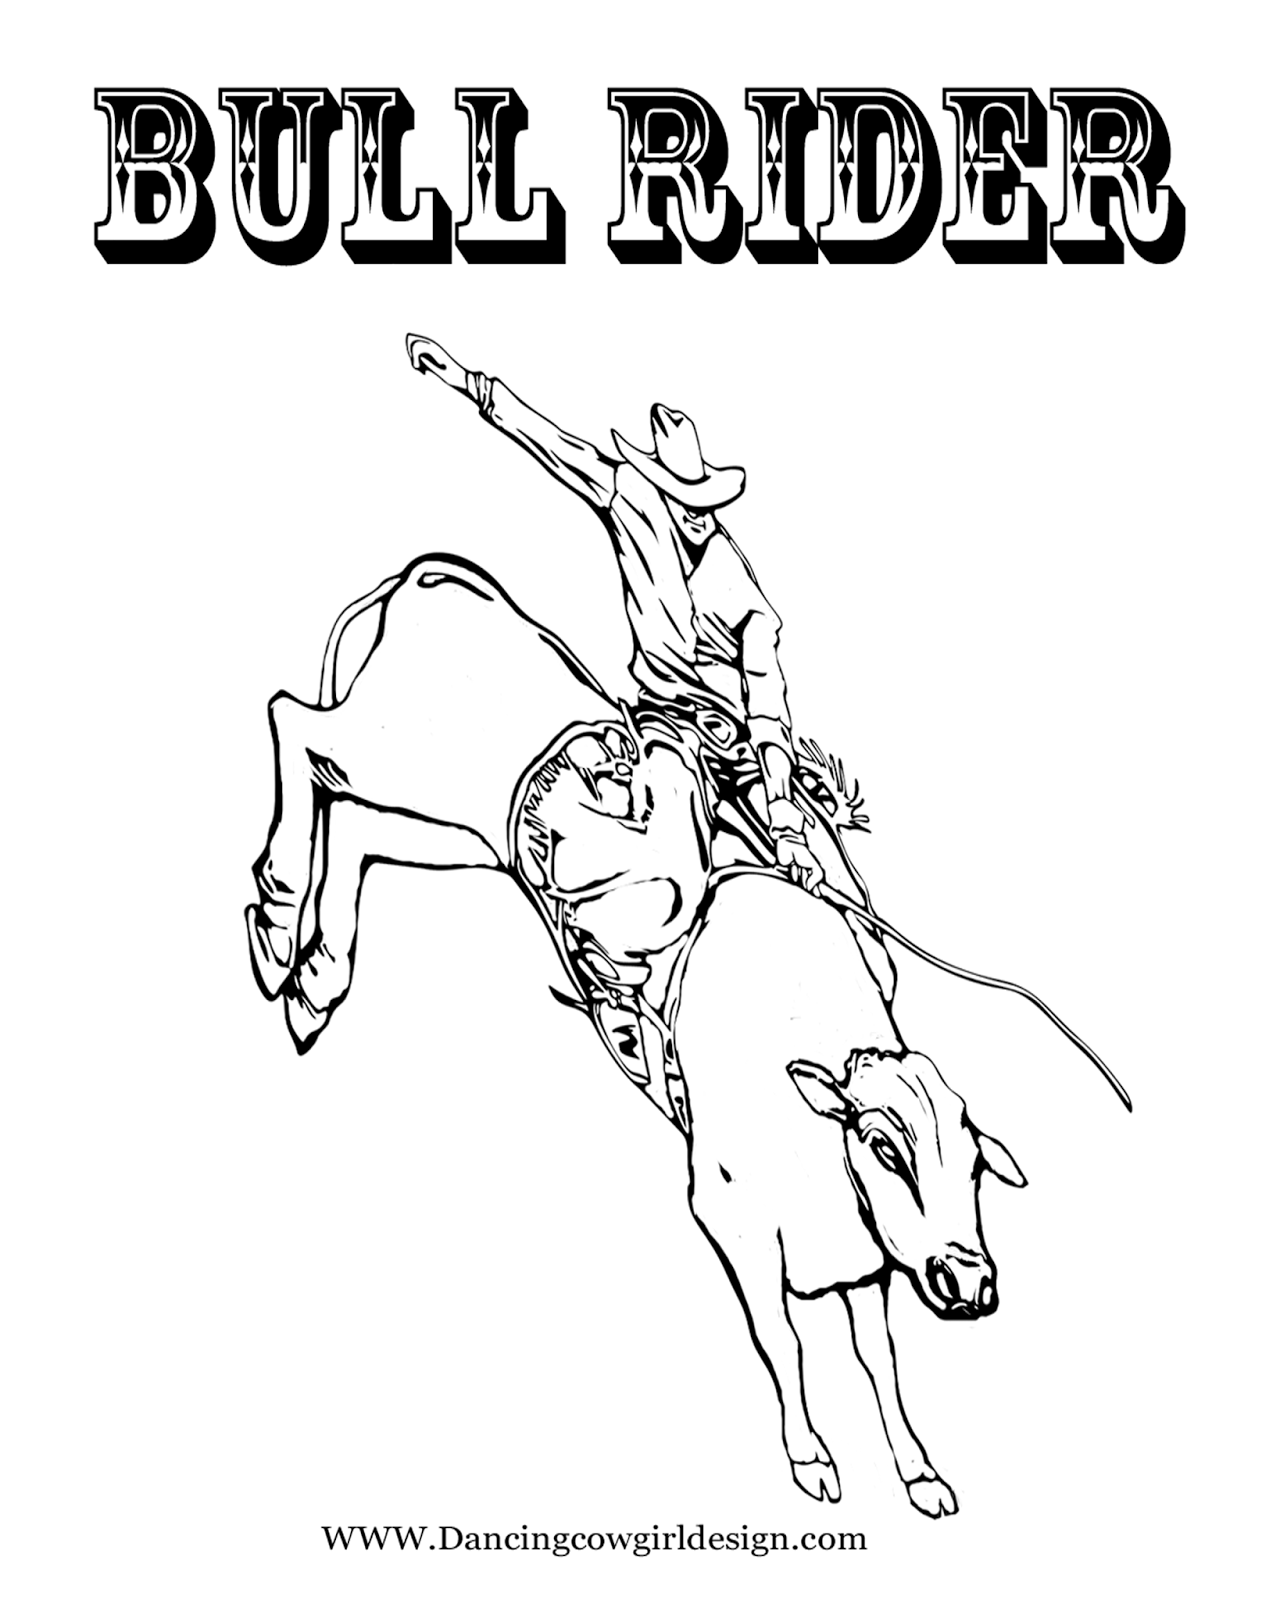 miniature bucking bull 1 moreover  further bullride15 likewise 600700086 o  18704 1347332671 1280 1280 likewise pcodXBxcE as well bull rider 8x10 300 in addition bucking bull standing likewise miniature bucking bull 2 together with Kids Coloring Longhorn Bull also bronc riding rodeo coloring page in addition 74733 bull. on bullriding coloring pages for adults